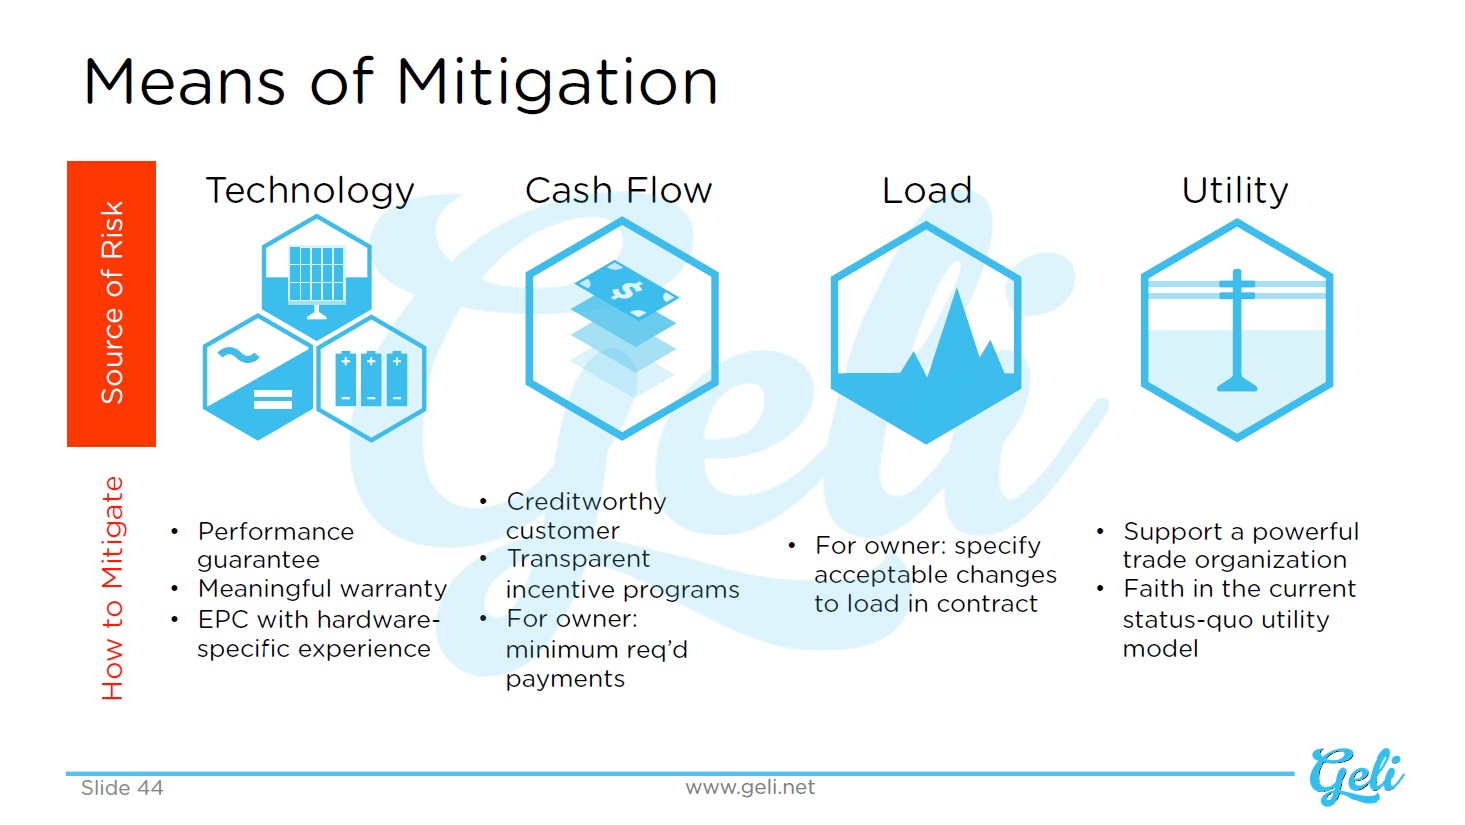 Means of Mitigation